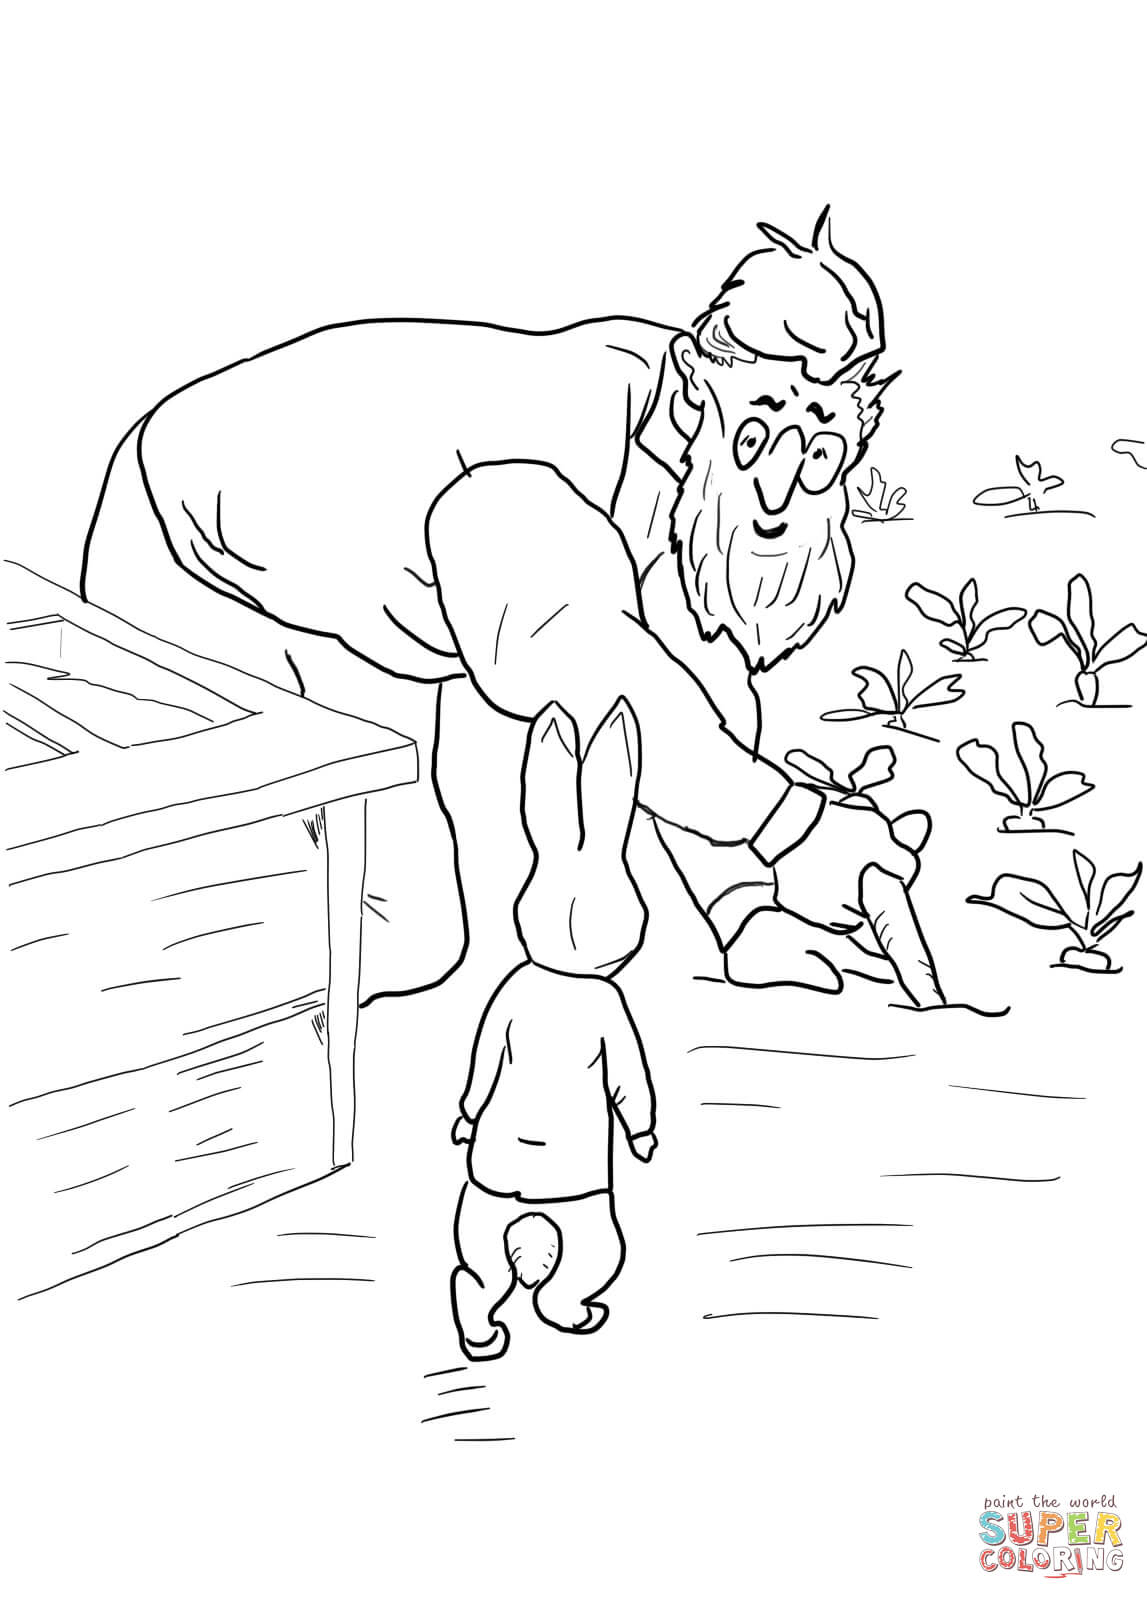 Peter Rabbit Is Spottedmr Mcgregor Coloring Page | Free - Free Printable Peter Rabbit Coloring Pages